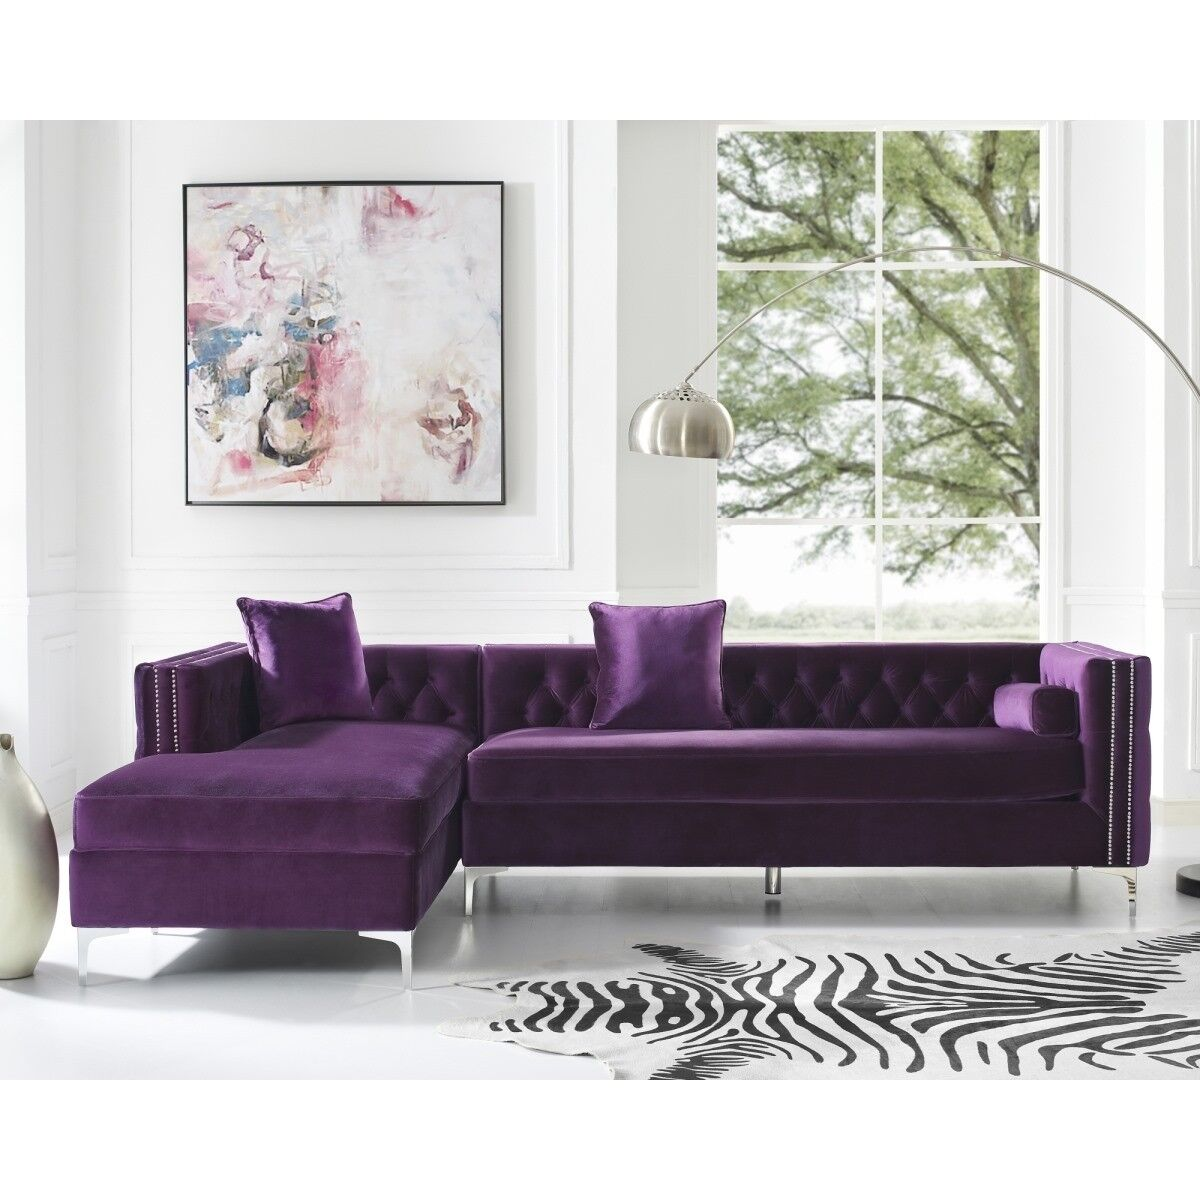 Pleasing Details About Posh Living Levi Velvet Tufted With Silver Y Leg Chaise Sectional Sofa Purple Pdpeps Interior Chair Design Pdpepsorg